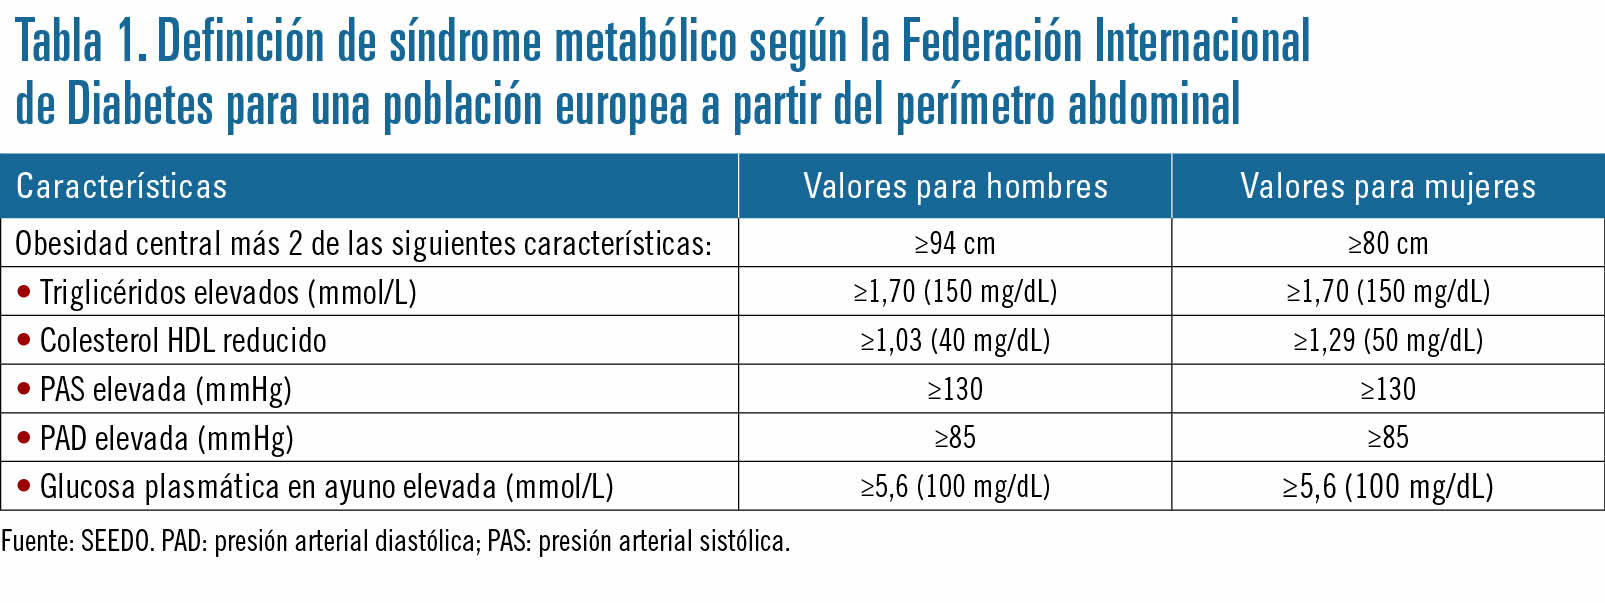 27 EF582 OFICINA FARMACIA ANALISIS tabla 1